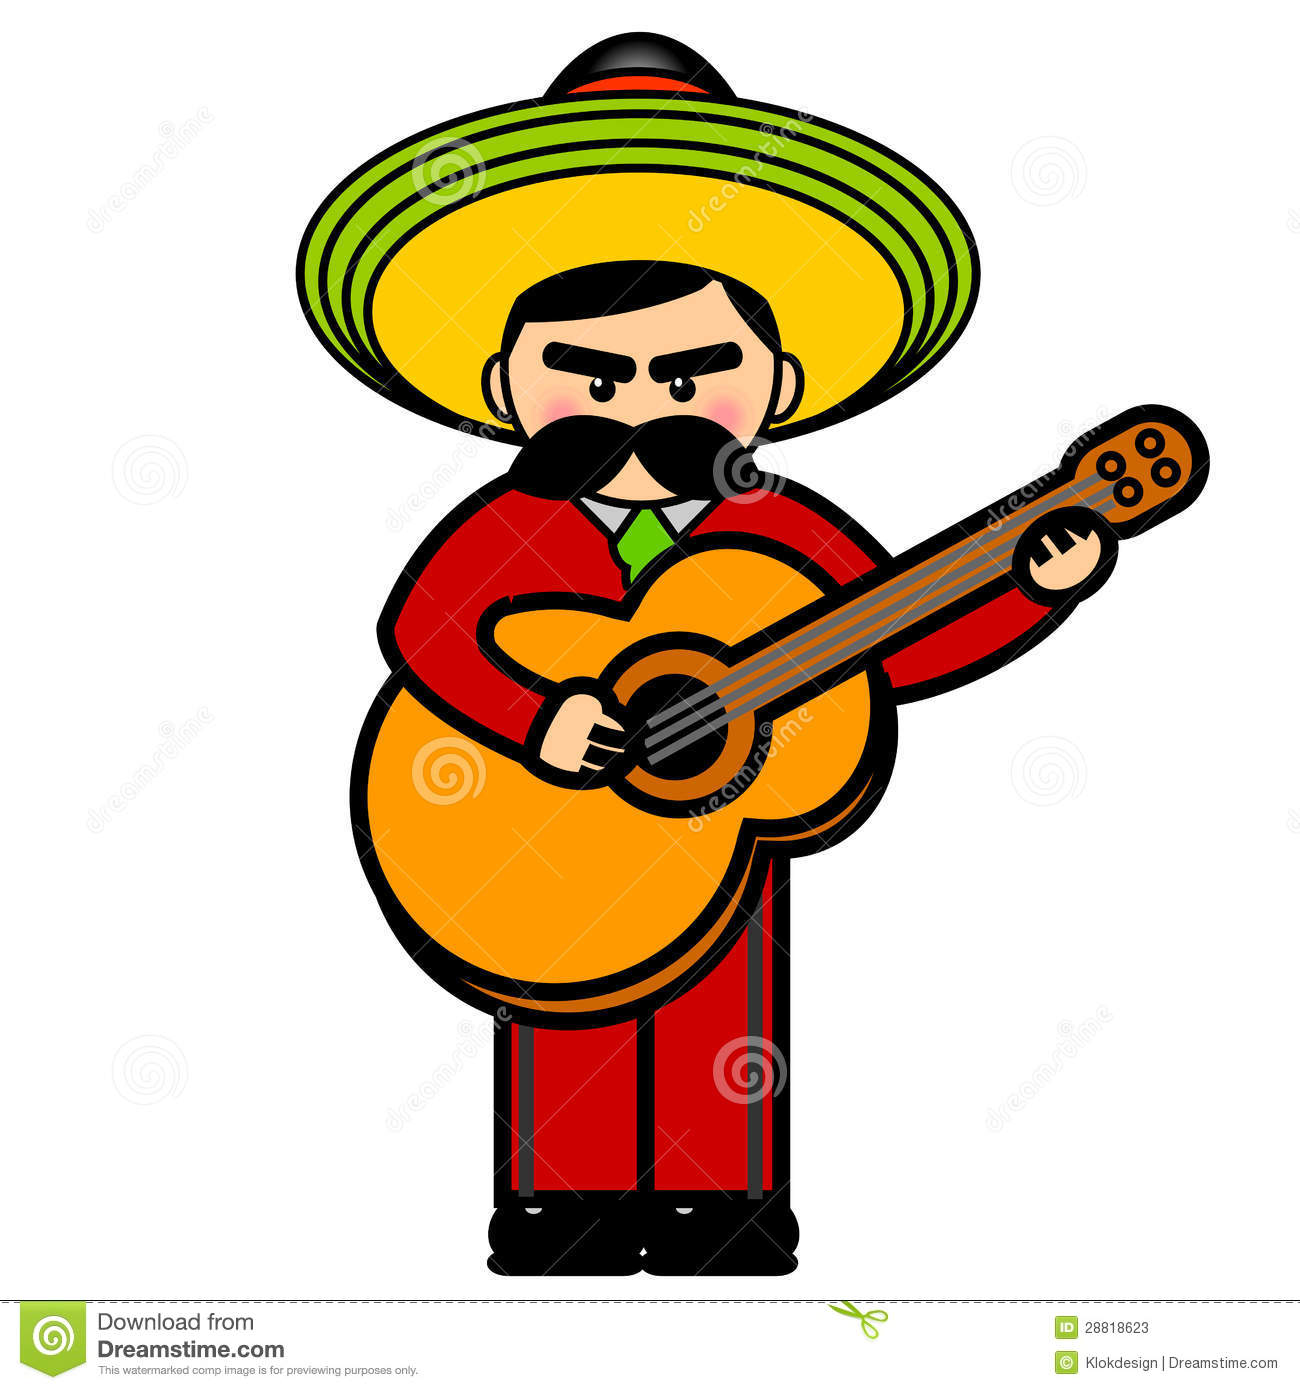 mariachi clipart at getdrawings com free for personal use mariachi rh getdrawings com mariachi hat clipart